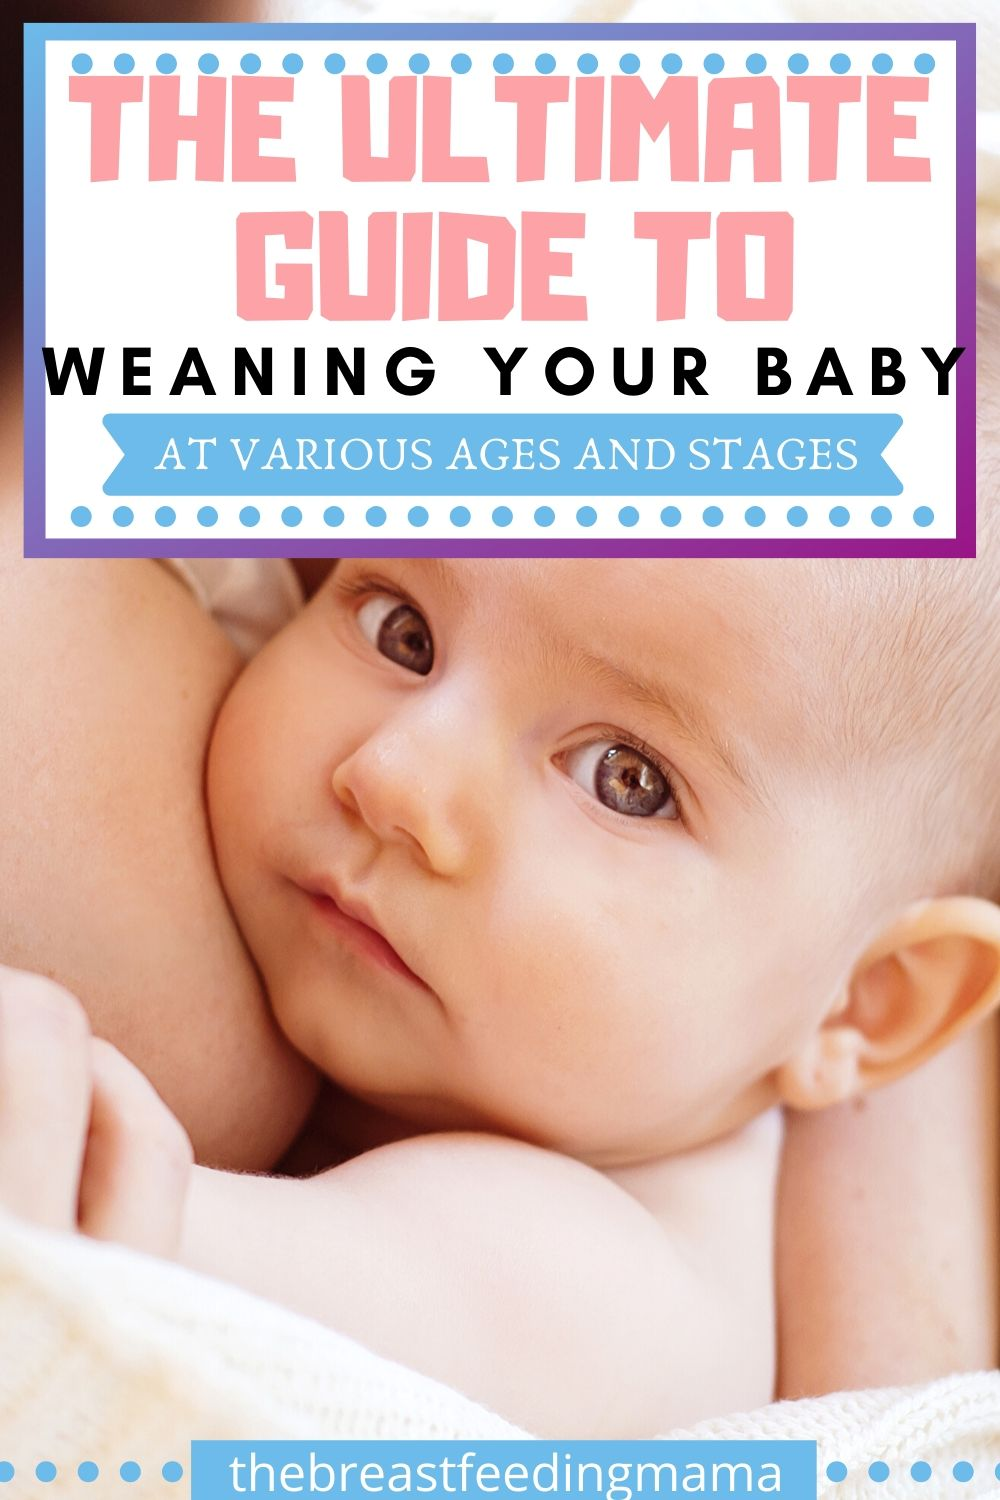 How to Wean from Breastfeeding: Everything You Need to Know - including tips for night weaning